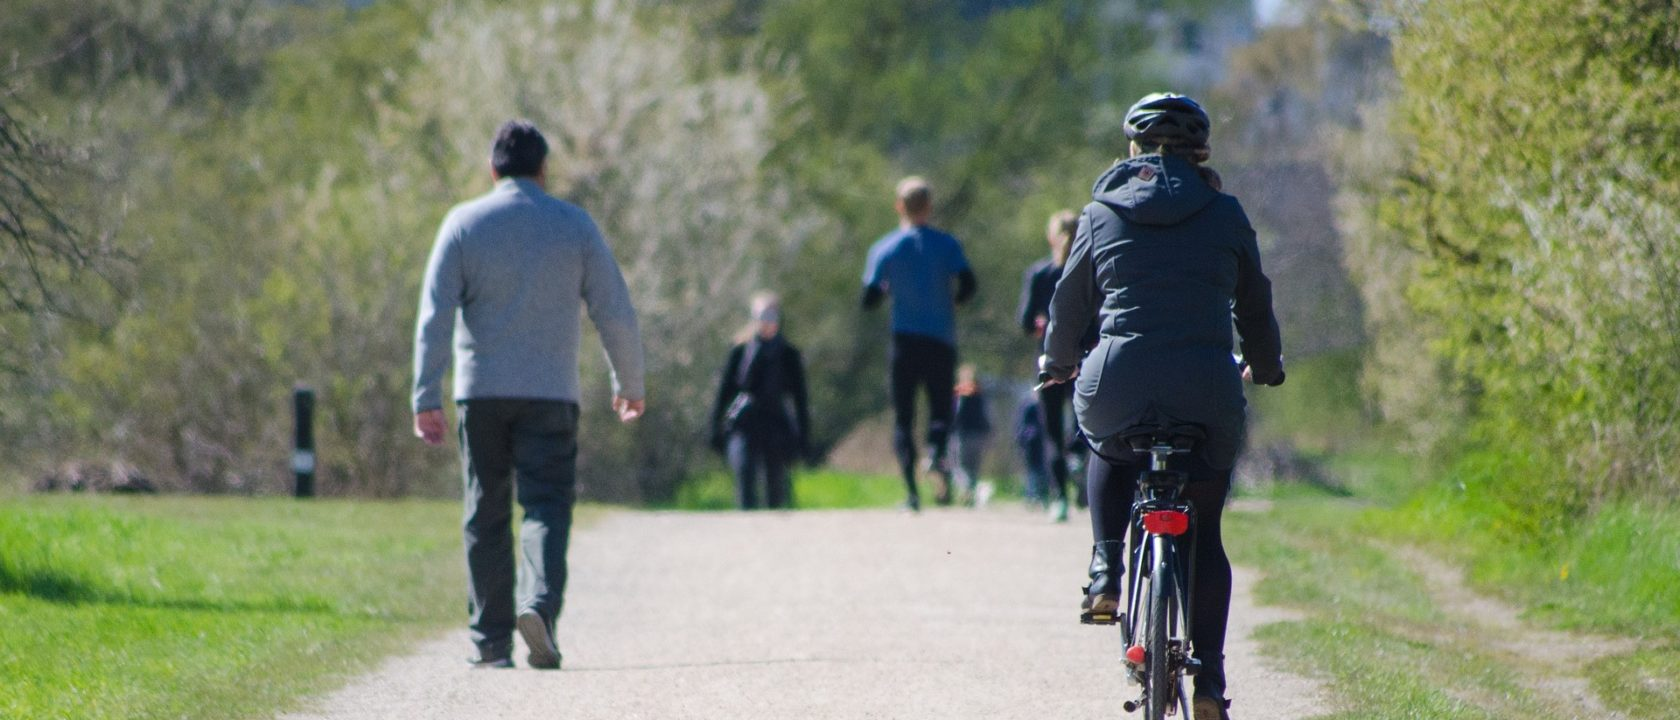 Roll into Spring with Bike Education Classes